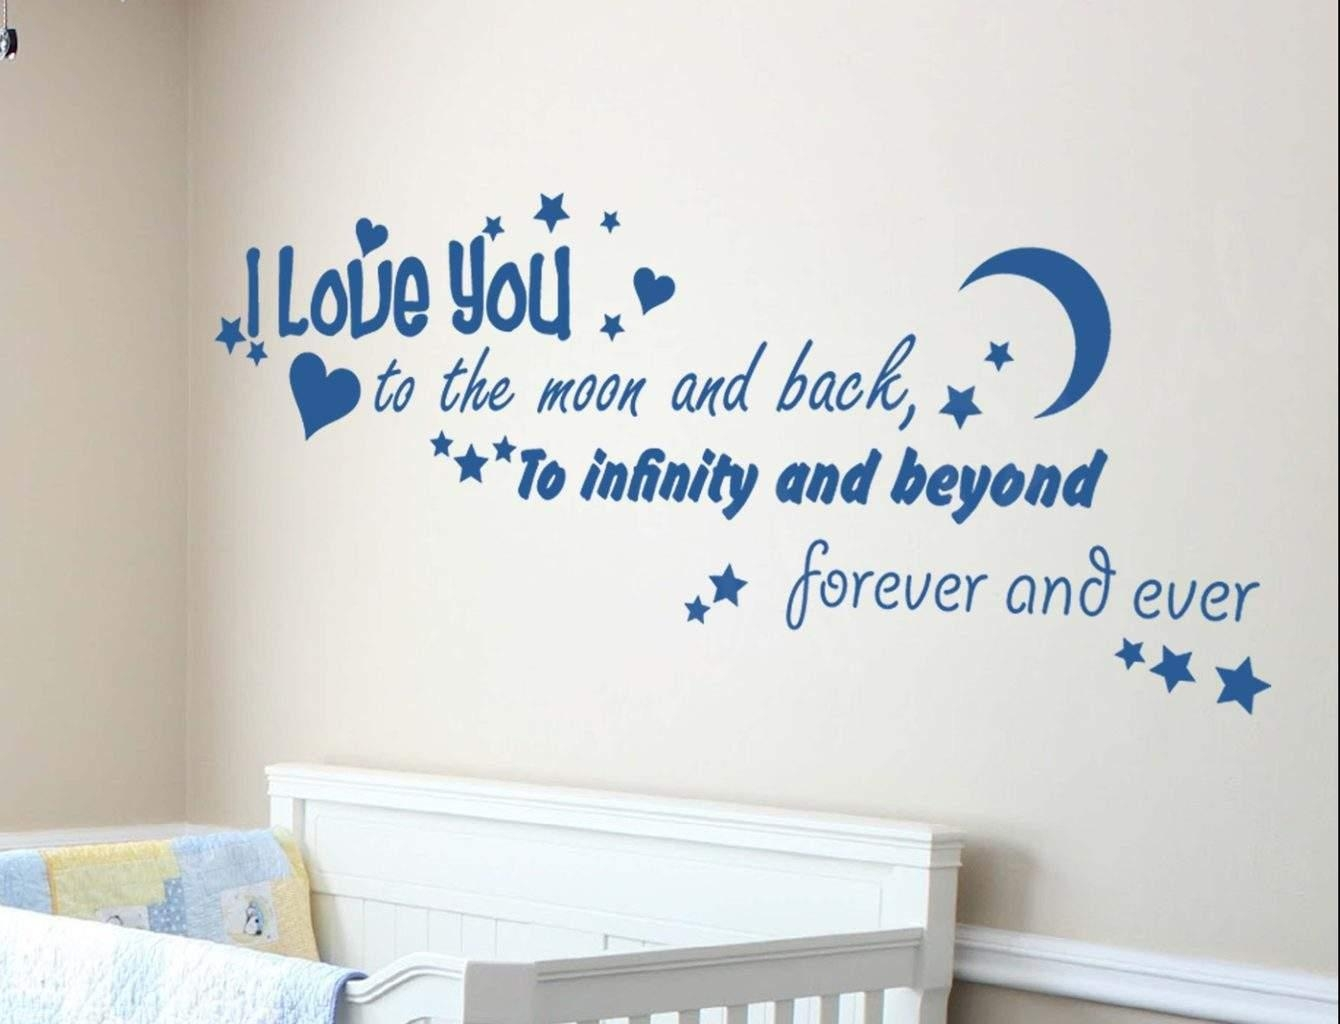 Spread Love With Love Based Wall Decals Pertaining To Love You To The Moon And Back Wall Art (View 6 of 20)